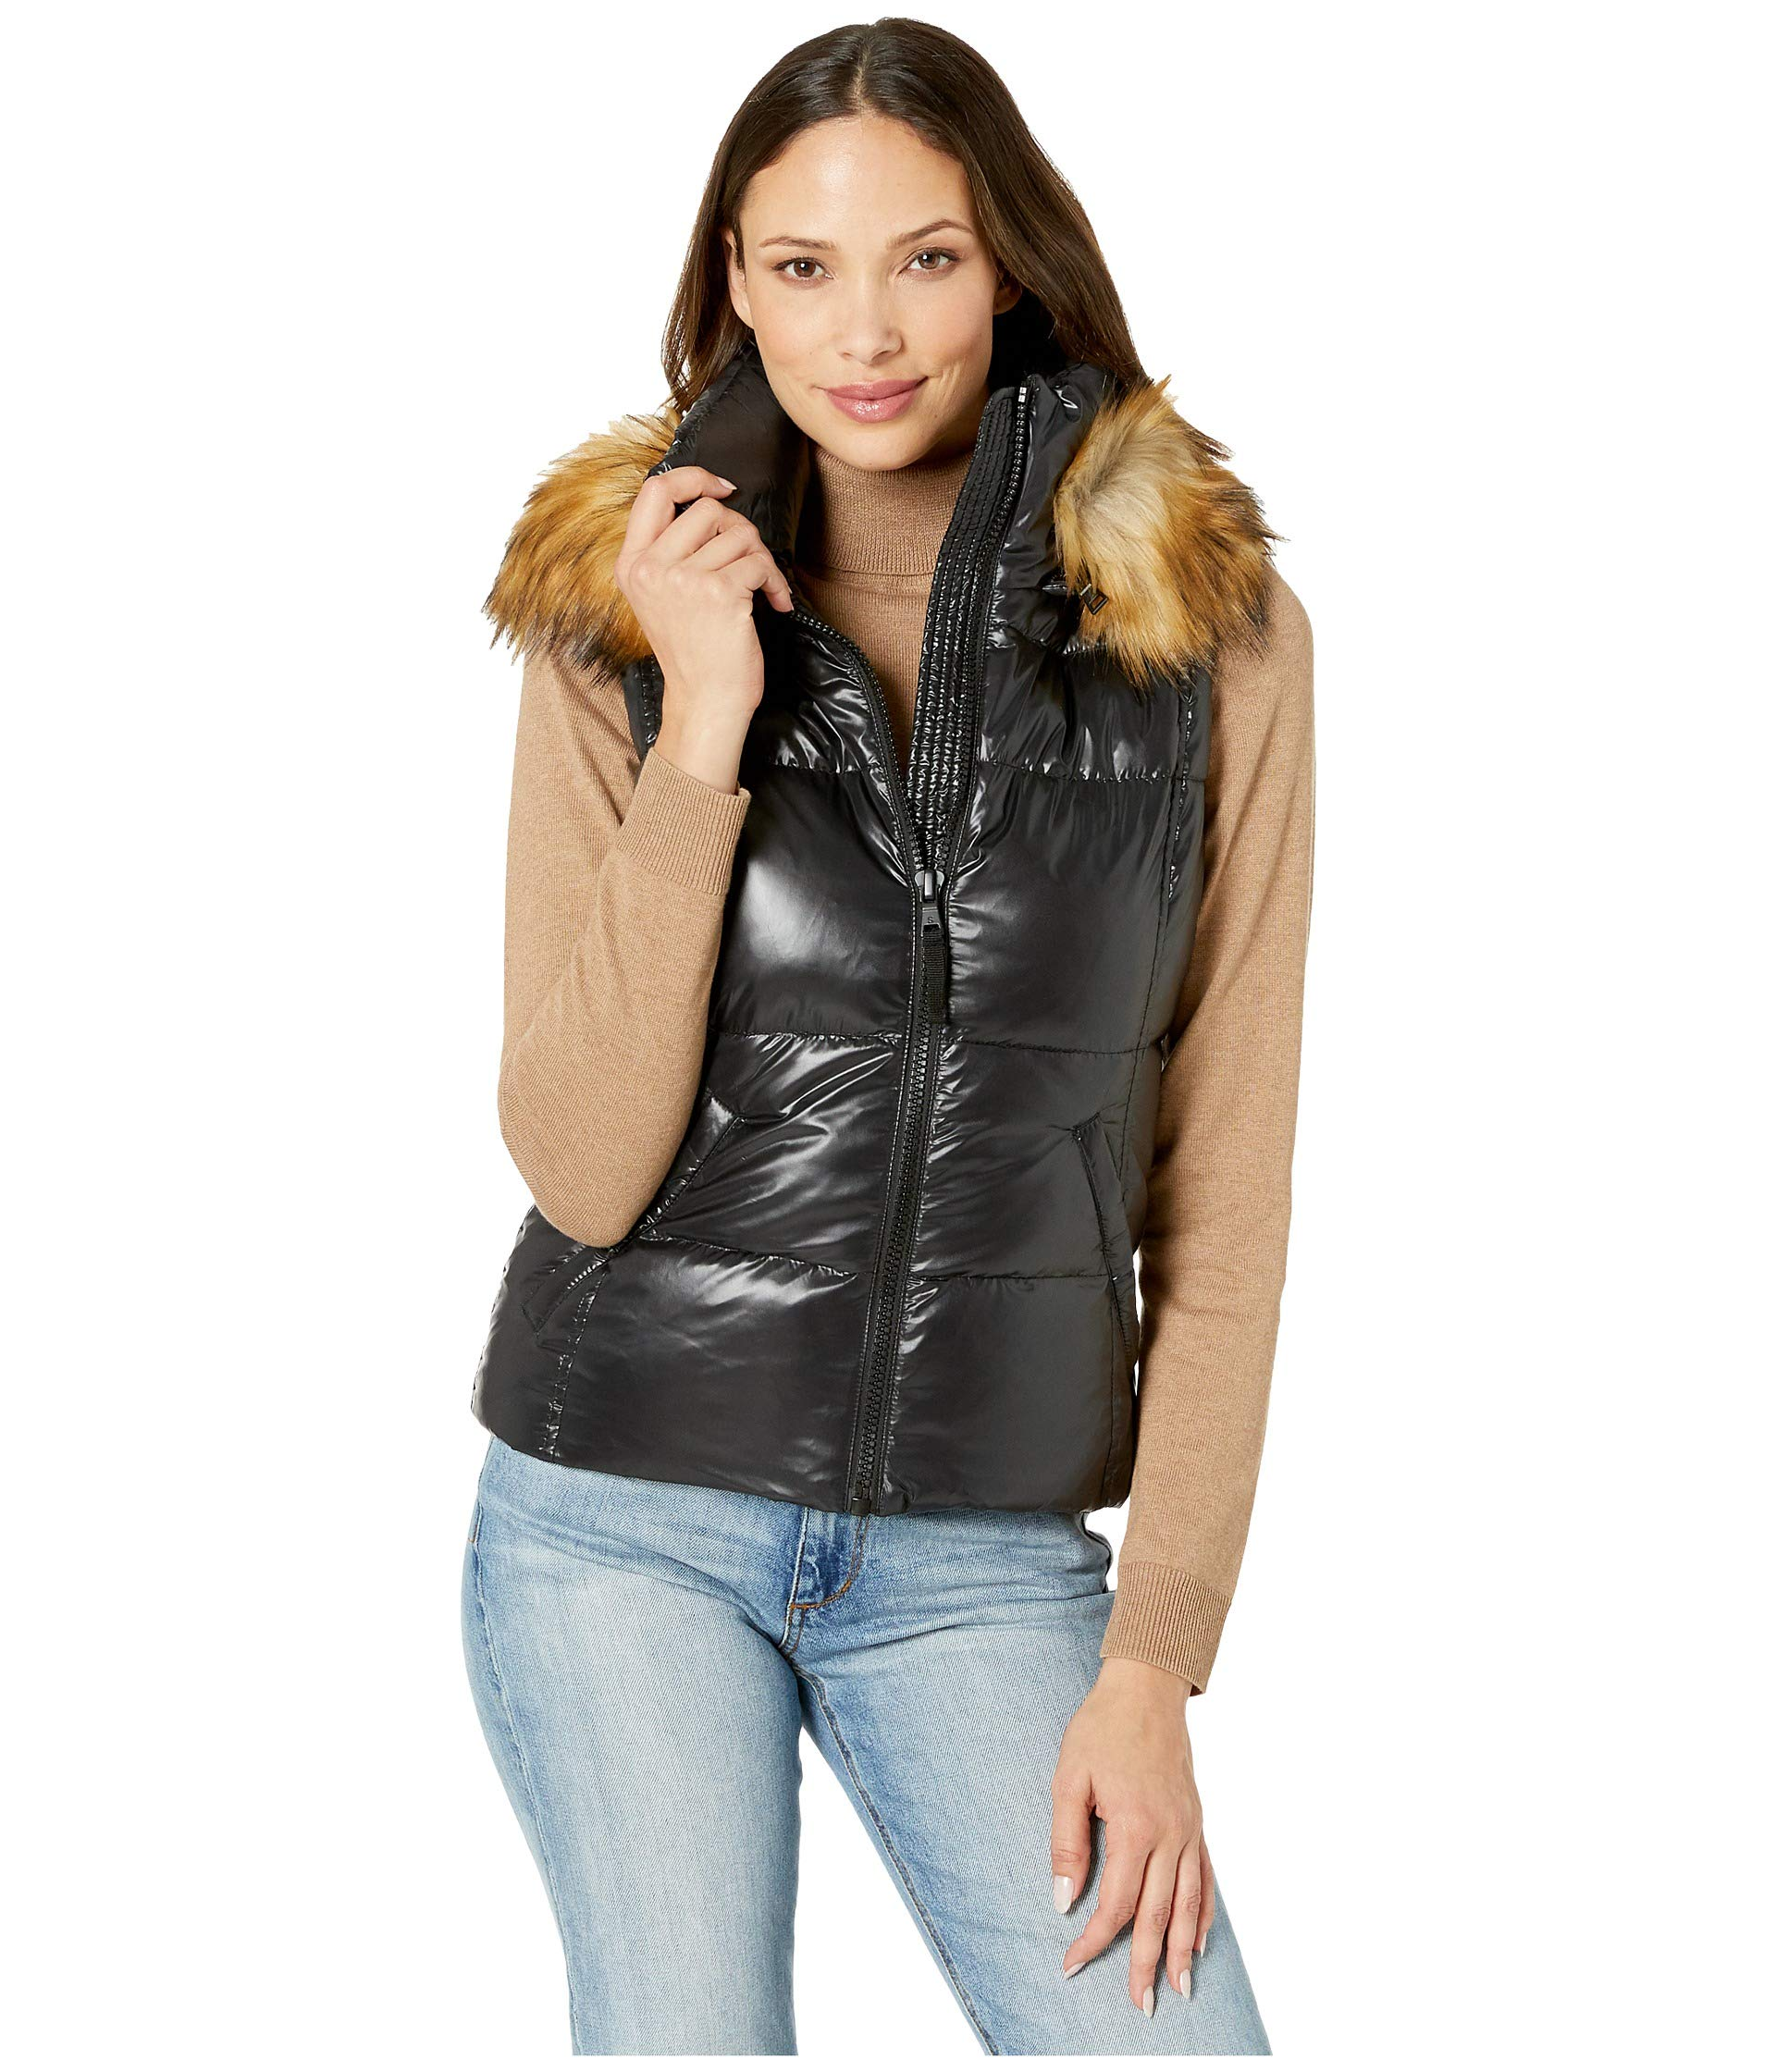 S13 Women's Snowcat Down Puffer Vest with Faux Fur Hood, Jet, X-Small by S13